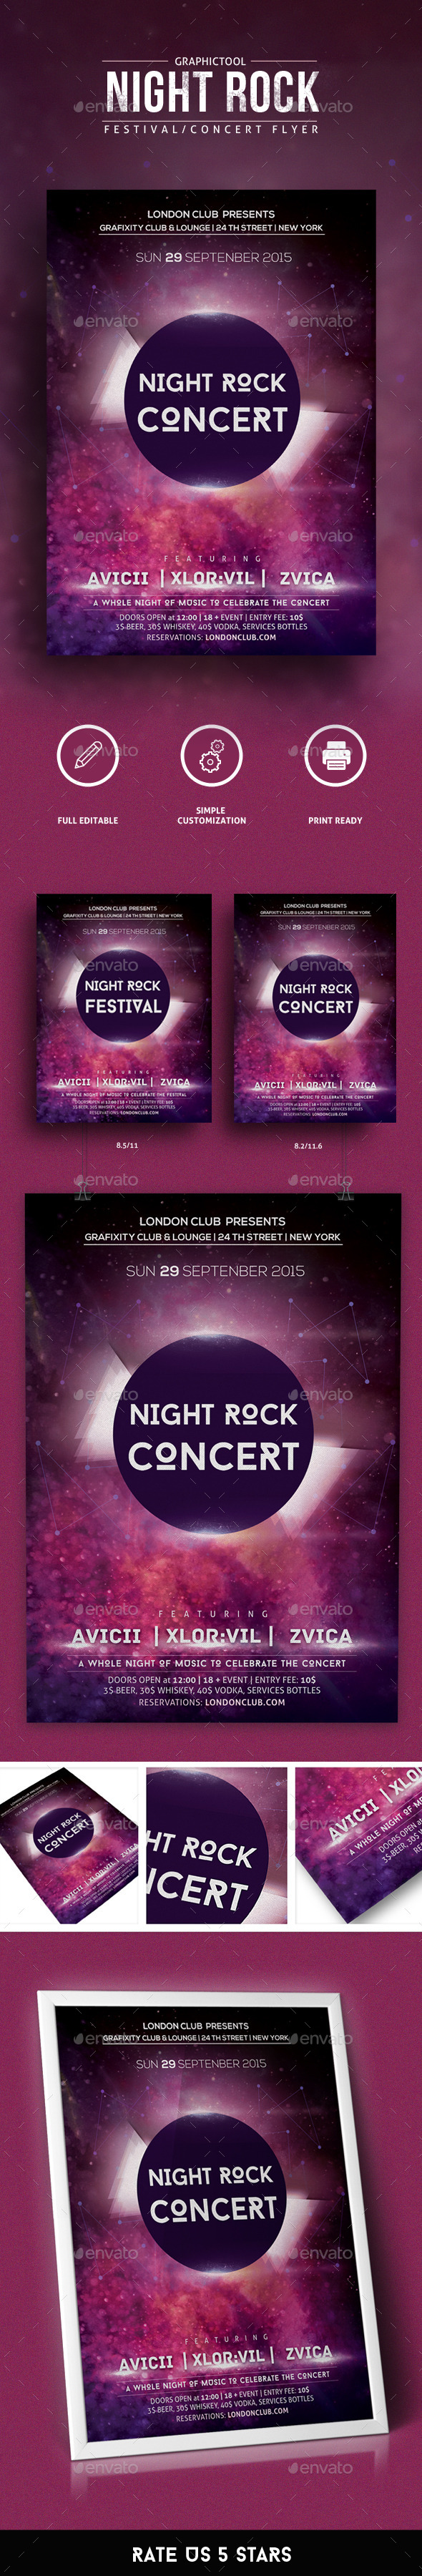 Night Concert/Festival Flyer - Concerts Events